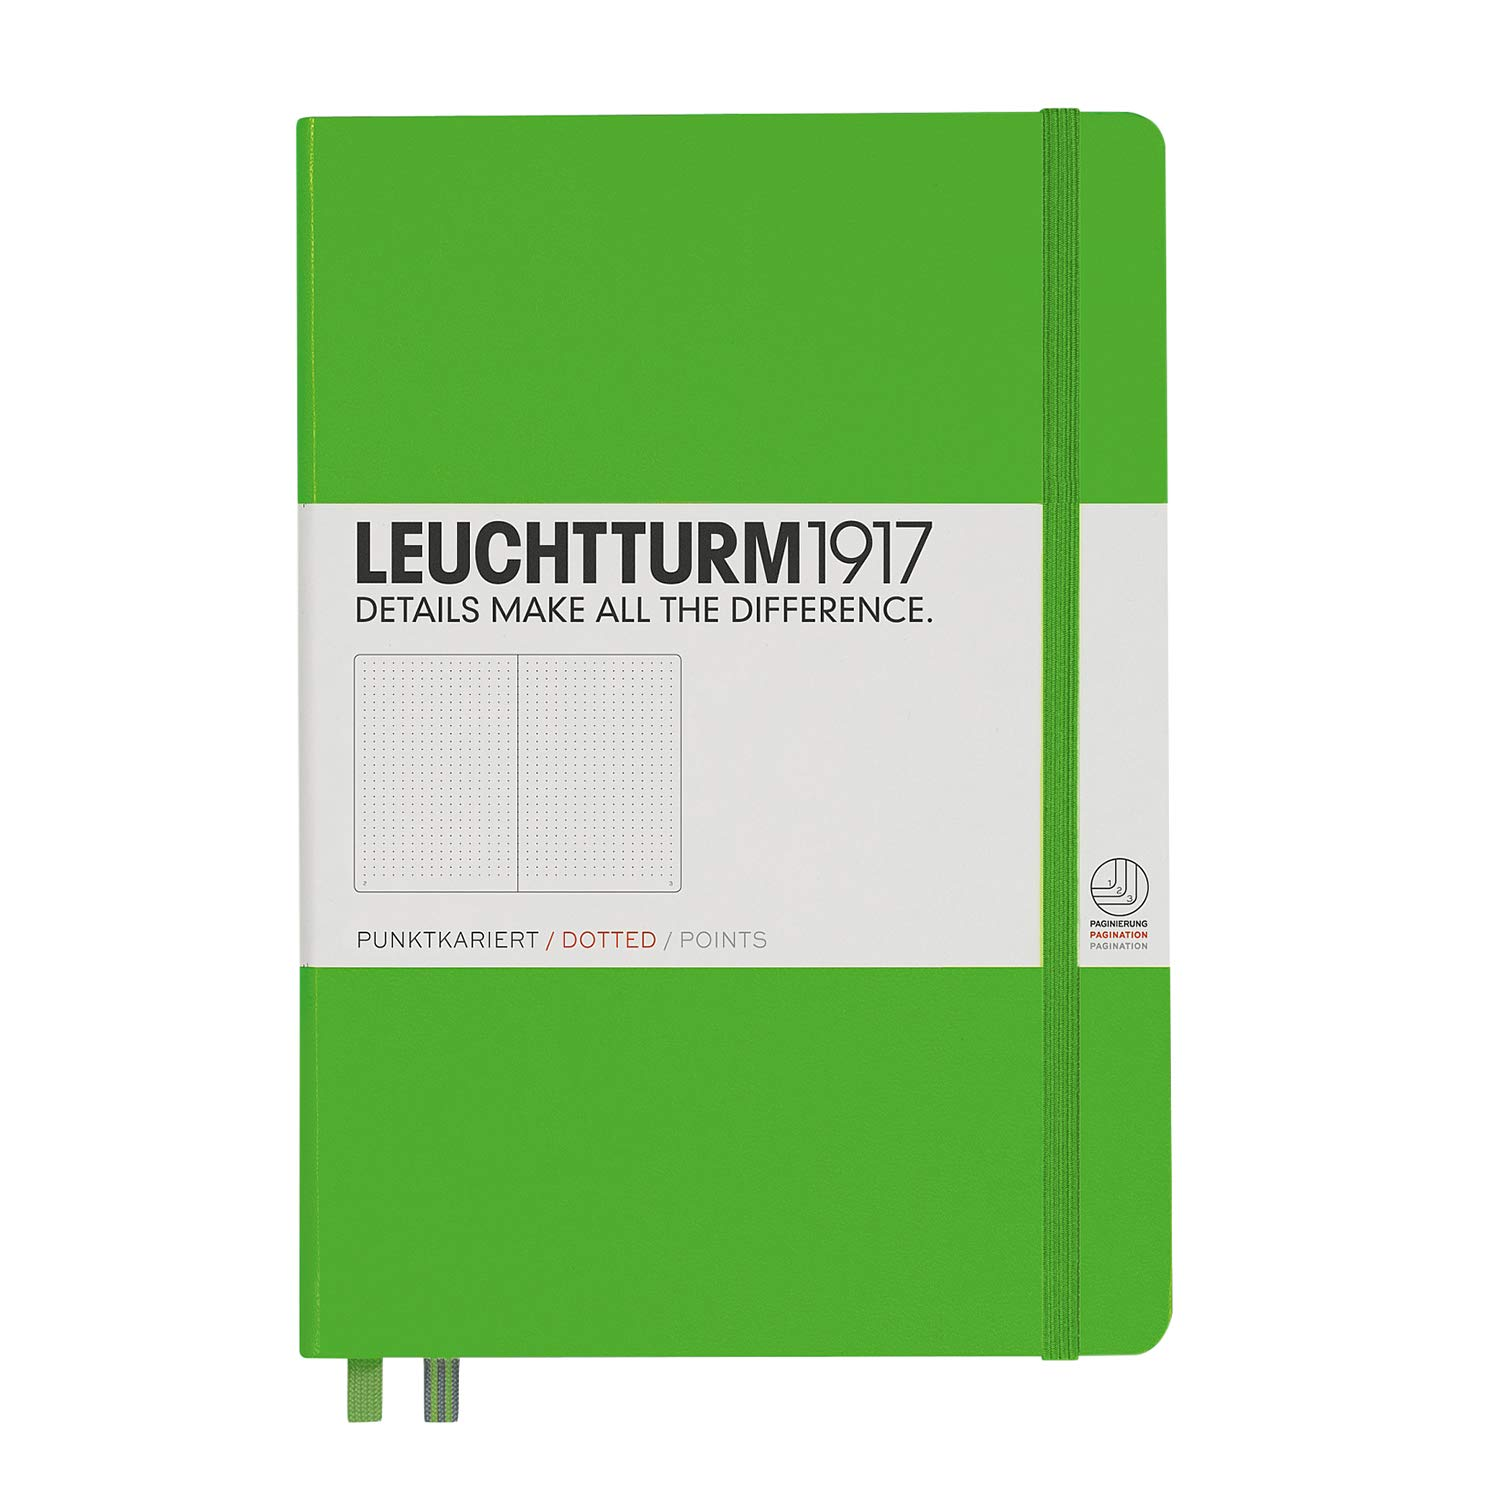 Leuchtturm1917 Medium A5 Dotted Hardcover Notebook [Fresh Green] - 249 Numbered Pages